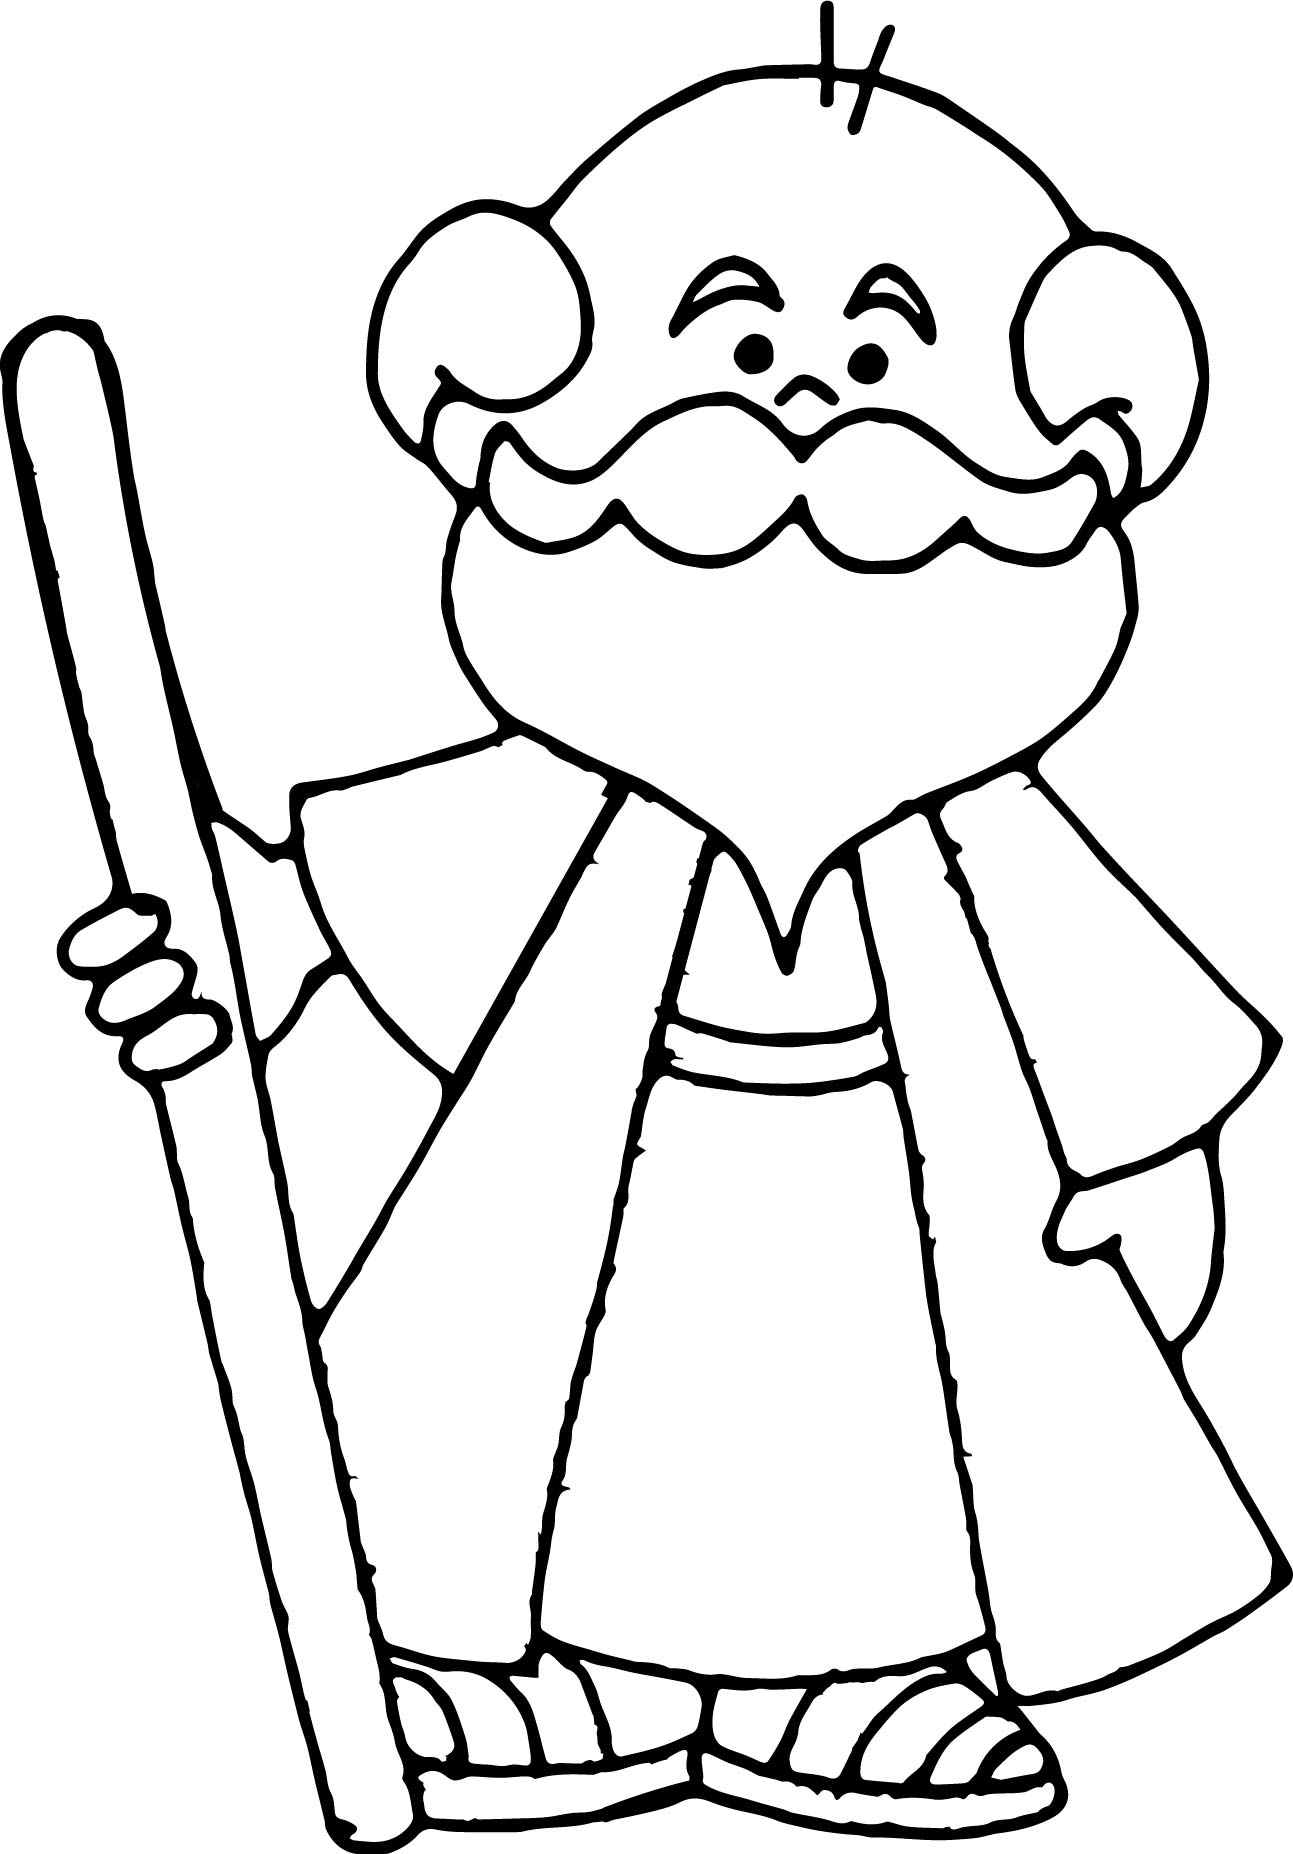 1293x1854 old man coloring pages, free clipart old man birthday